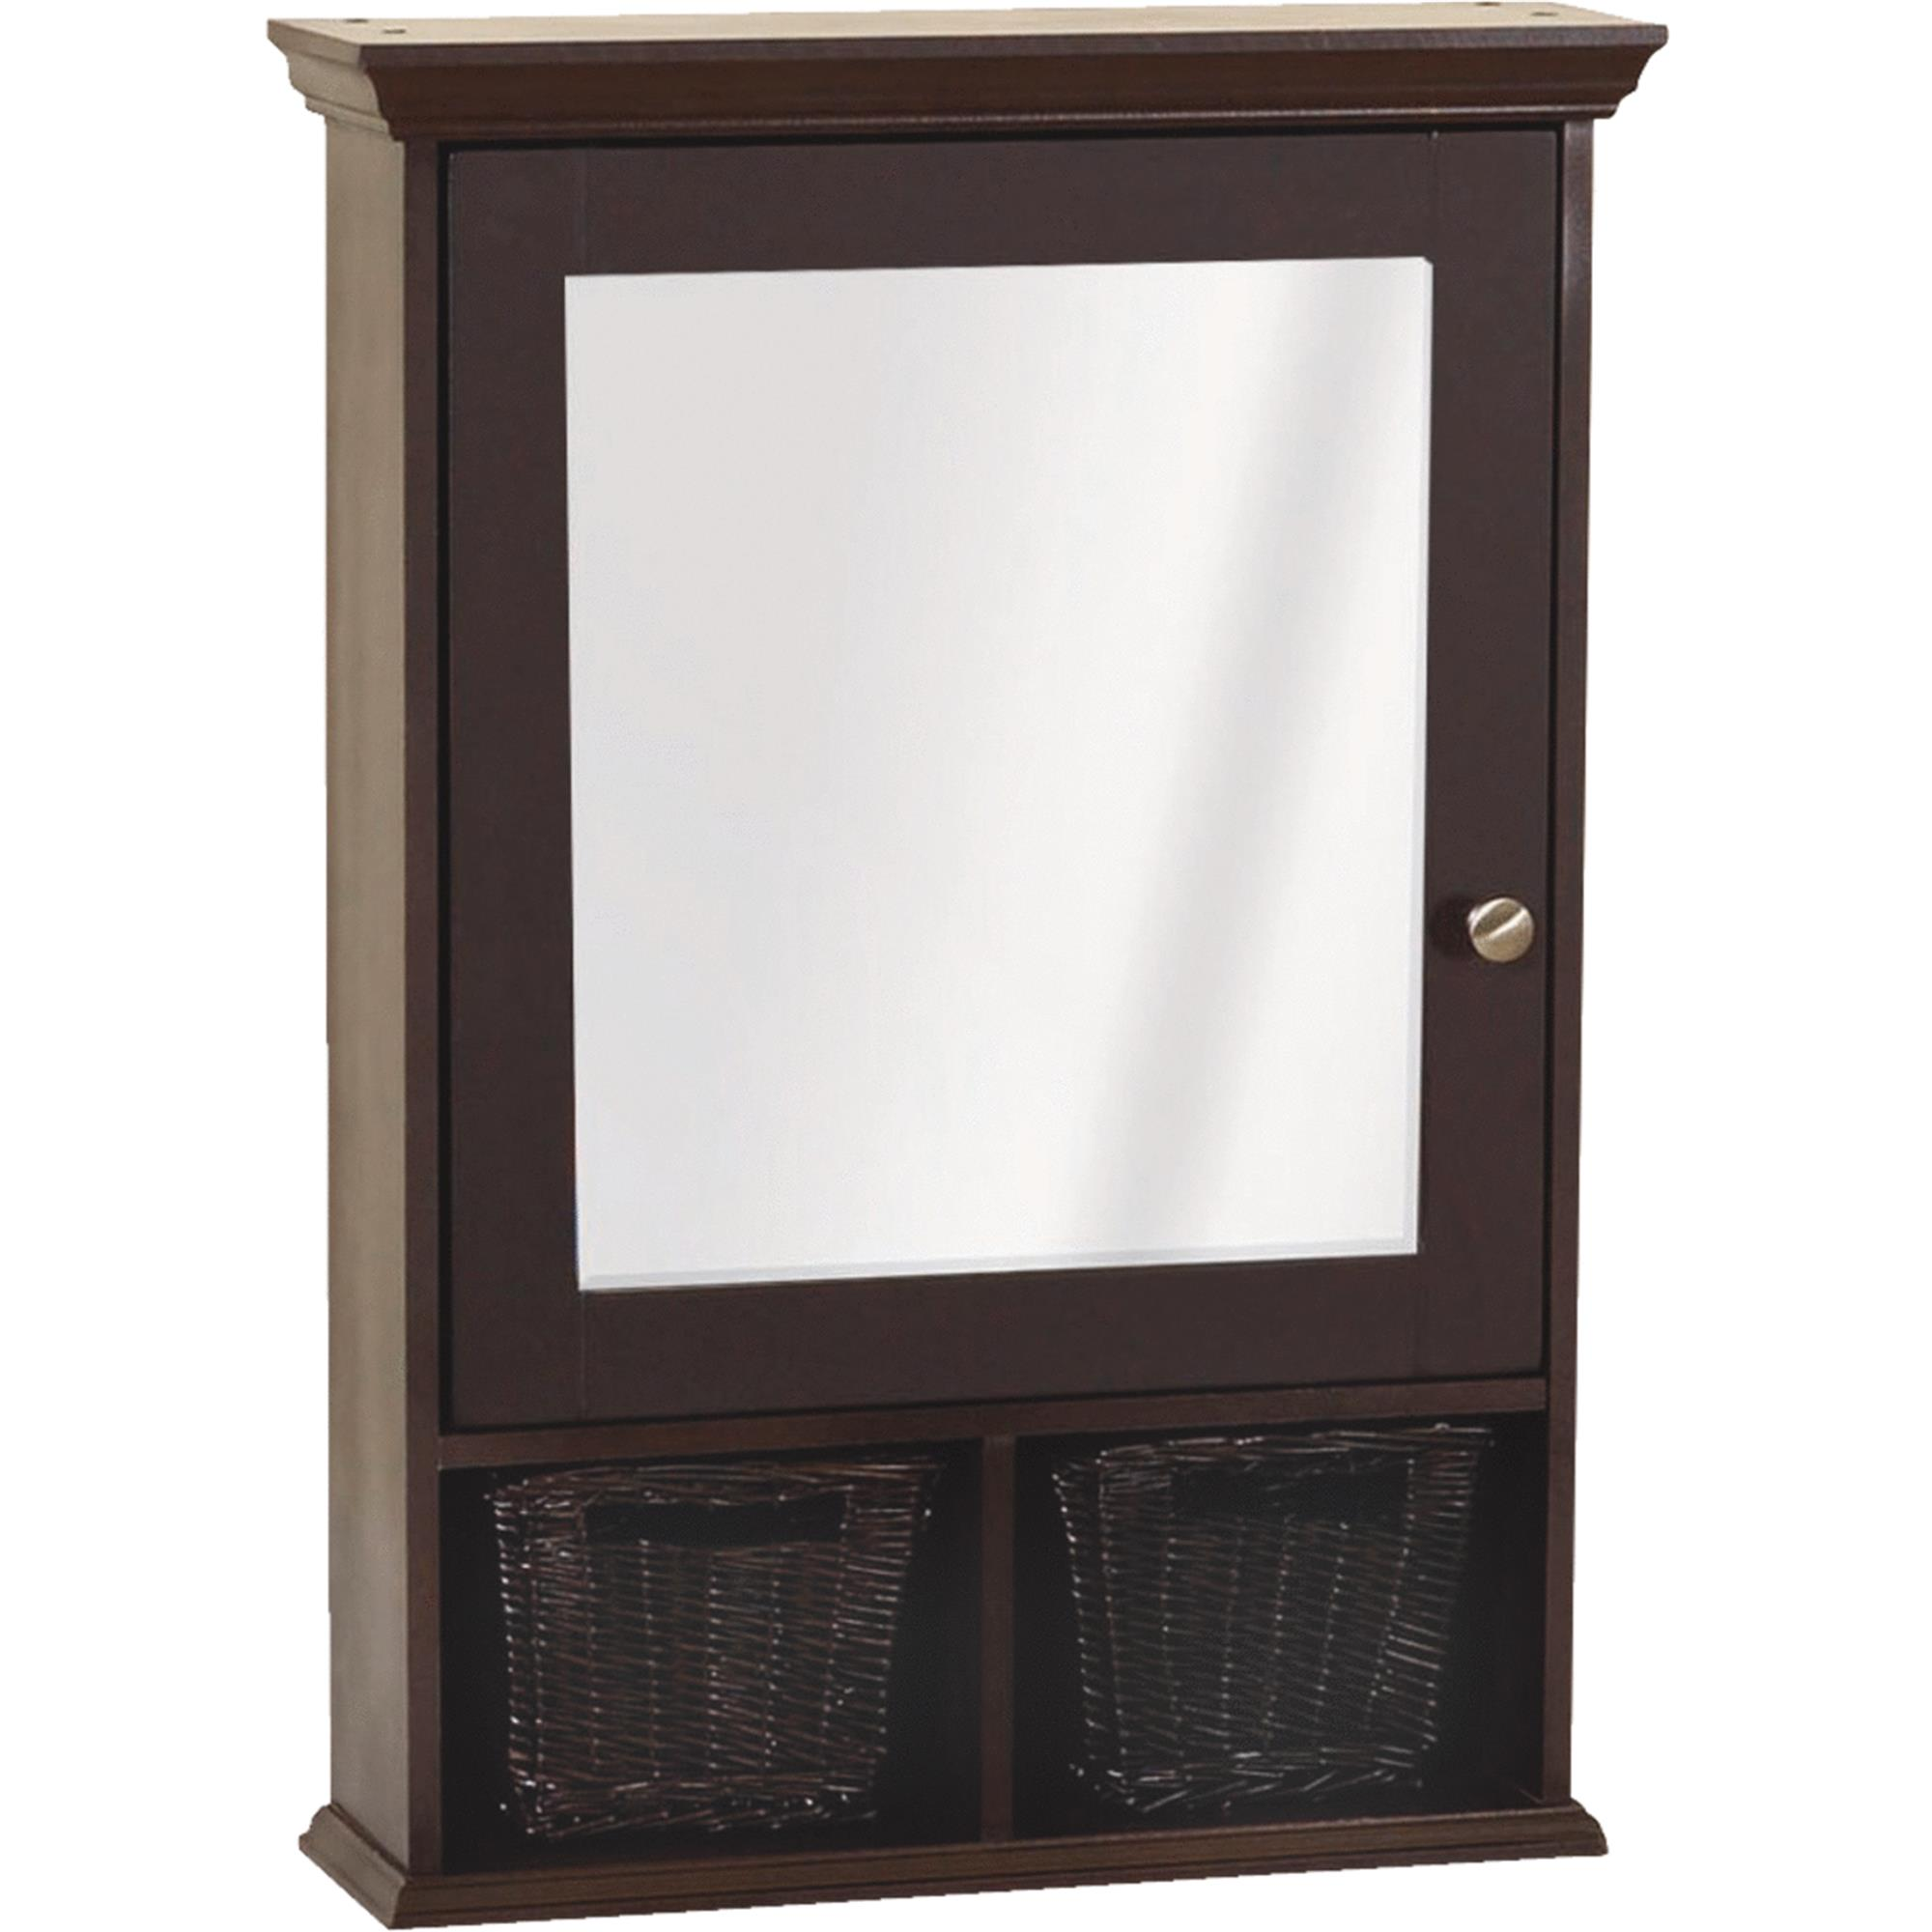 "Zenith TH22CH 21"" x 29"" x 6-1 2"" Medicine Cabinet with Wicker Baskets by Zenith Products"